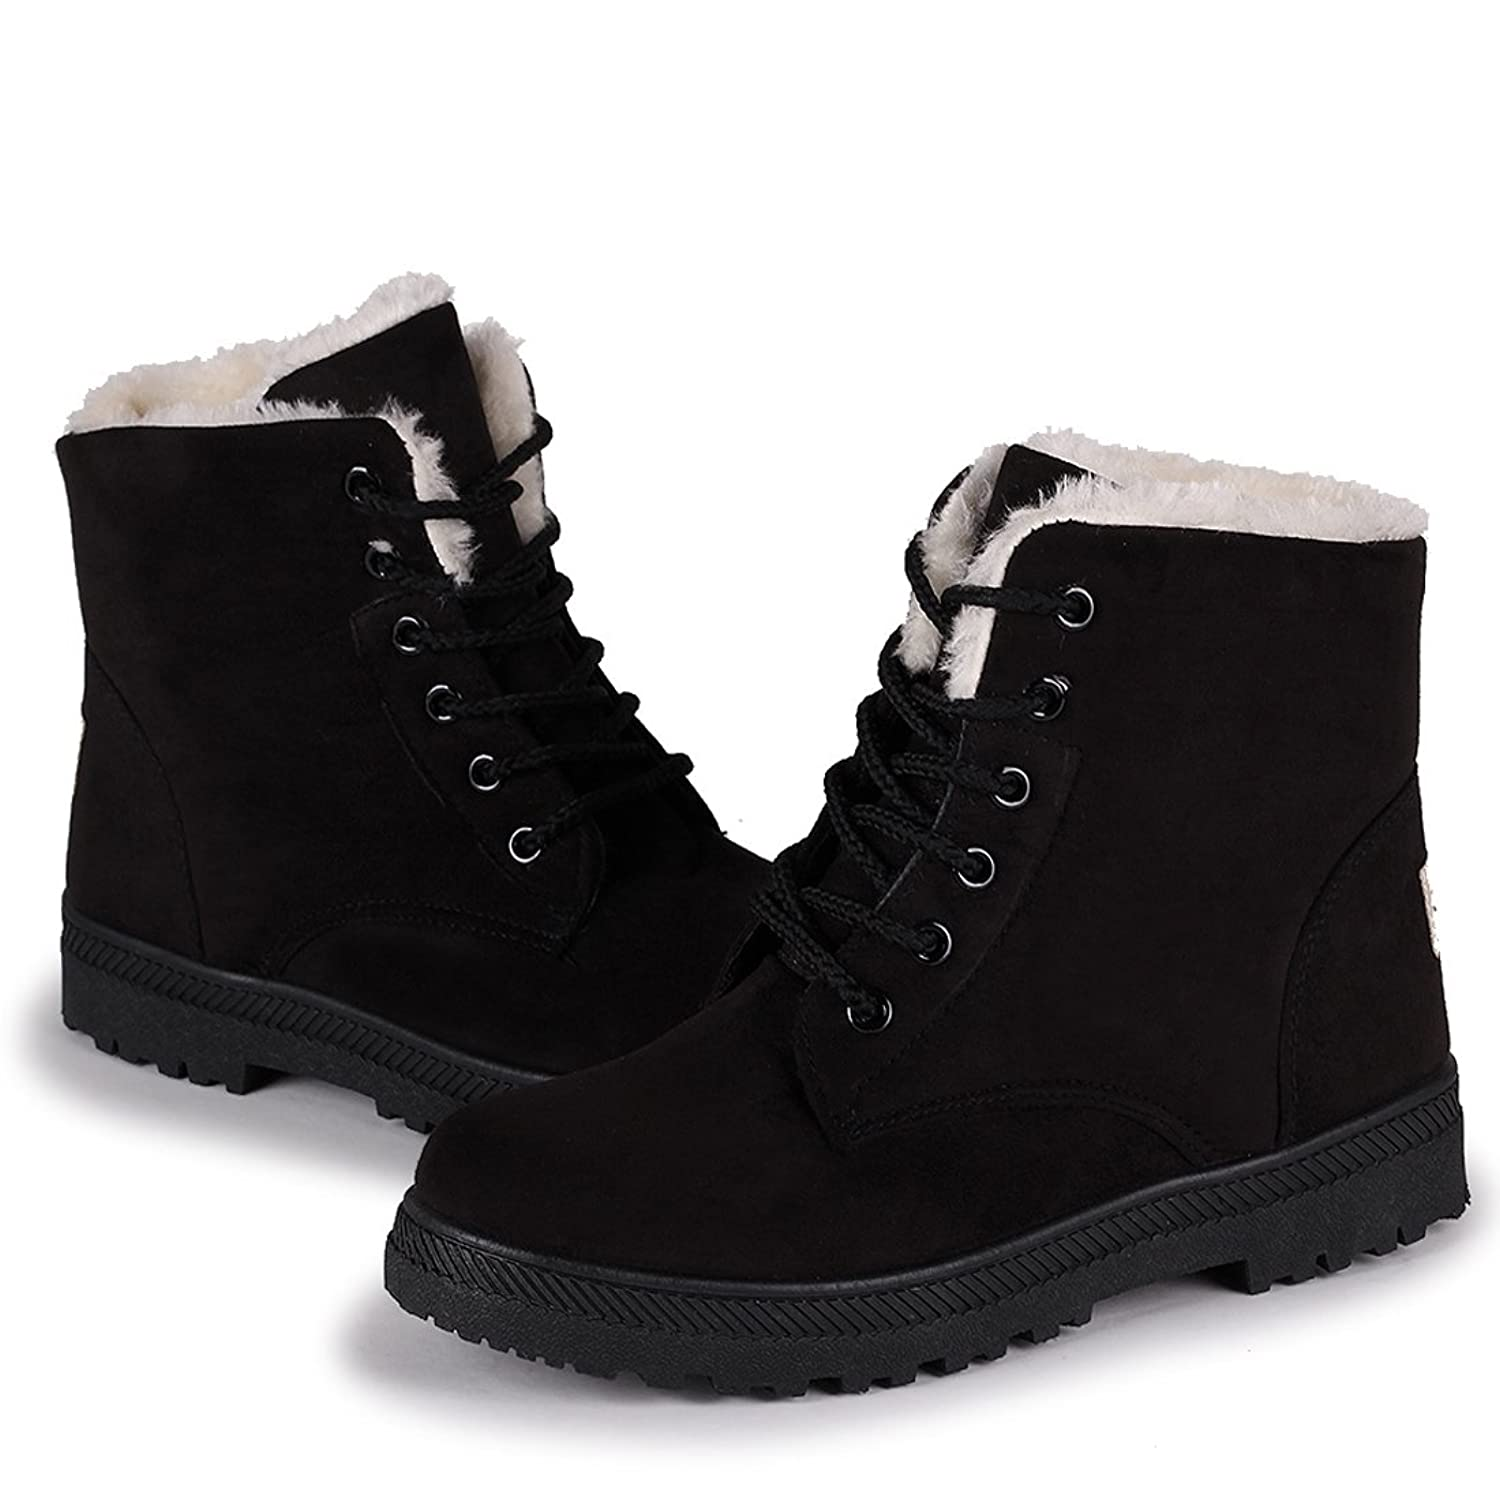 Free shipping & returns on women's winter boots & weatherproof boots at paydayloansonlinesameday.ga Find a great selection of rain boots, snow boots & cold weather boots from top .